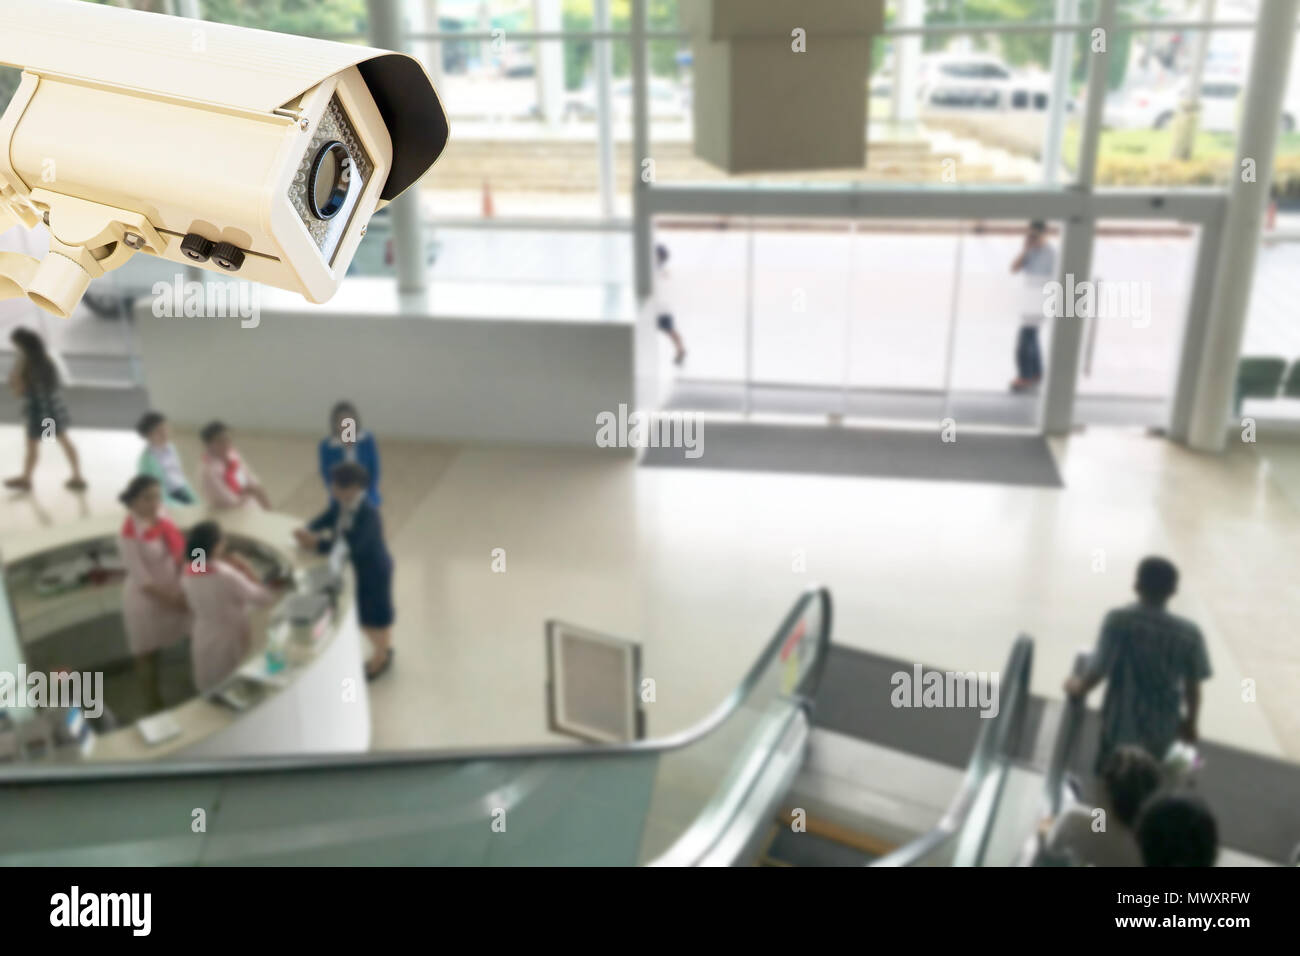 The CCTV Security Camera operating in center public relations hospital blur background. Stock Photo